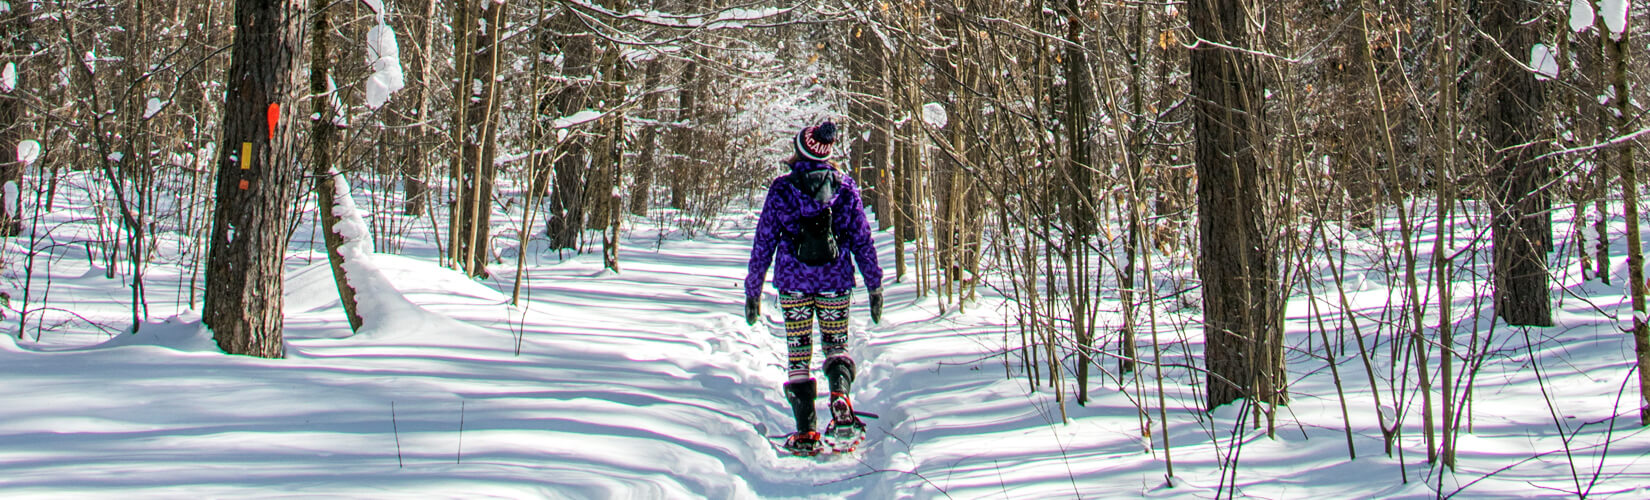 5 Snow-mazing Things to Do in Sault Ste Marie Ontario in Winter :: I've Been Bit! Travel Blog